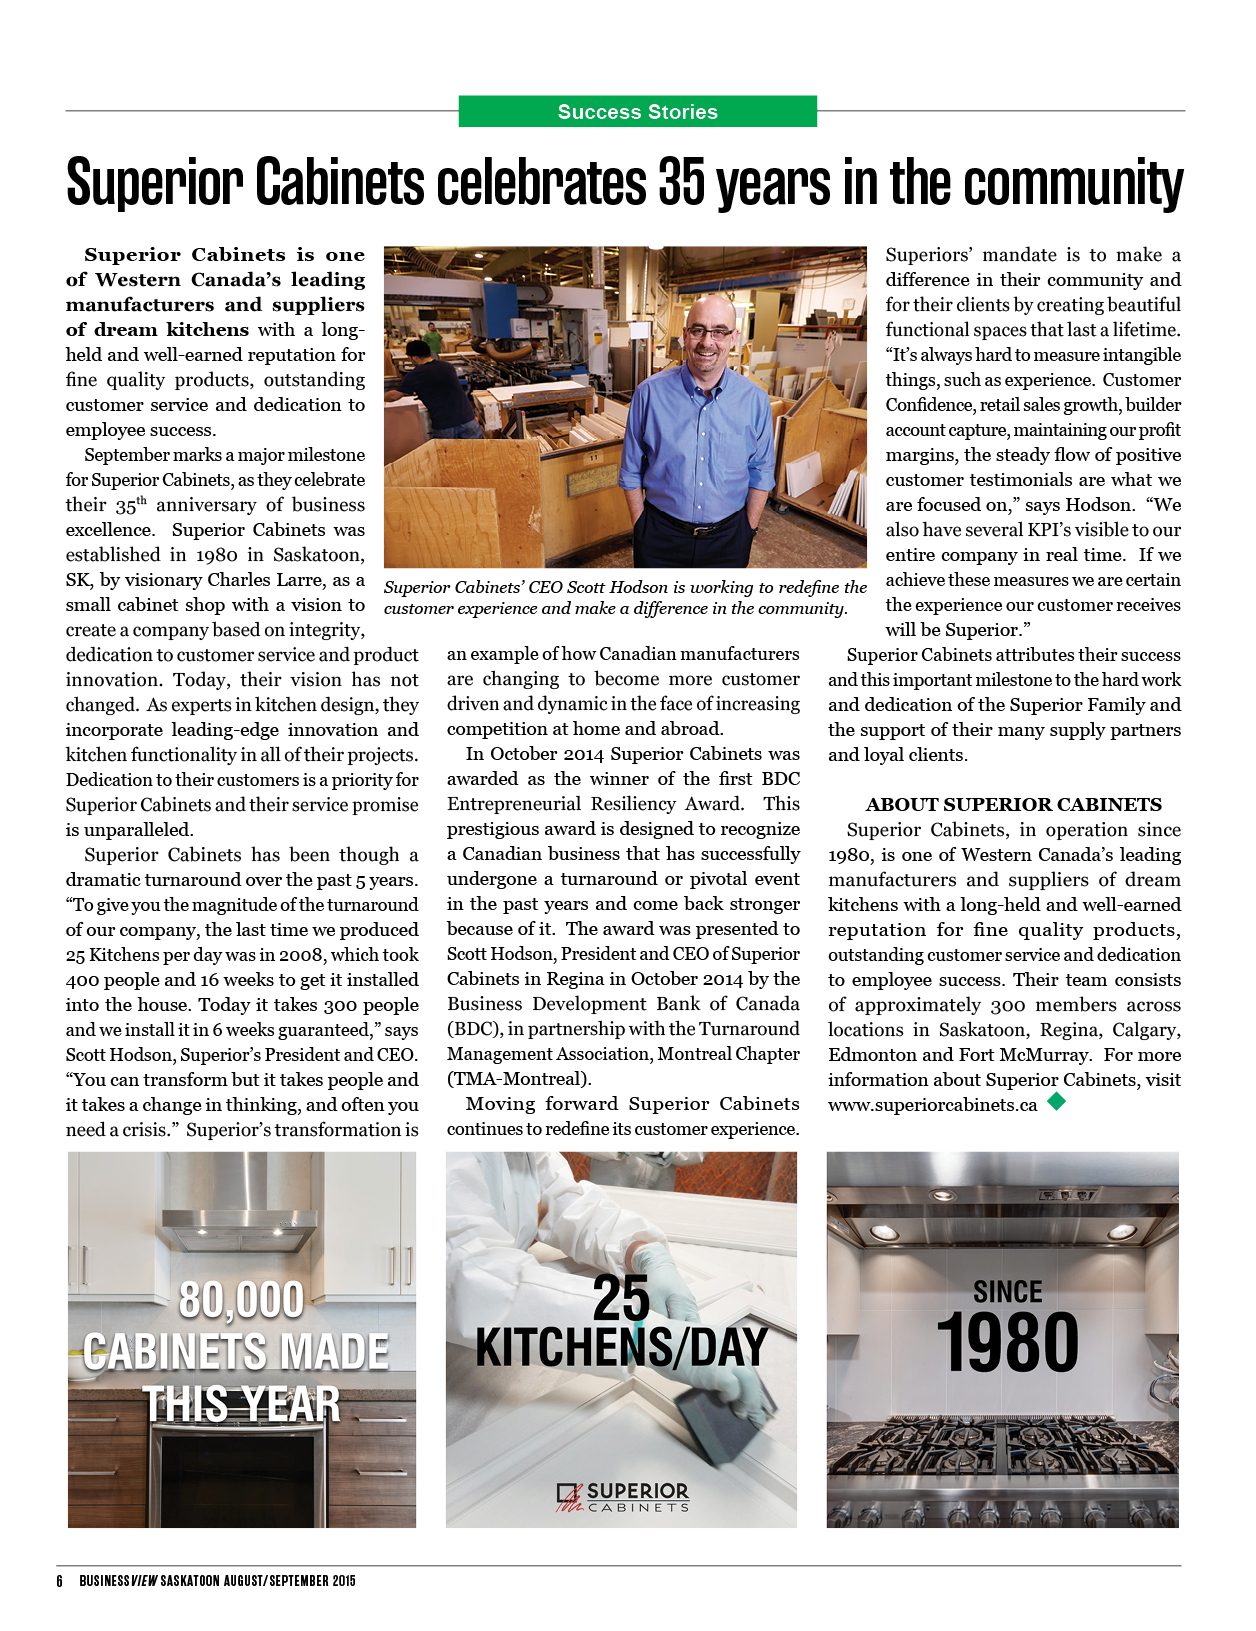 <h1>SUPERIOR CABINETS EDITORIAL FEATURE:  Superior Cabinets celebrates 35 years in the community</h1>